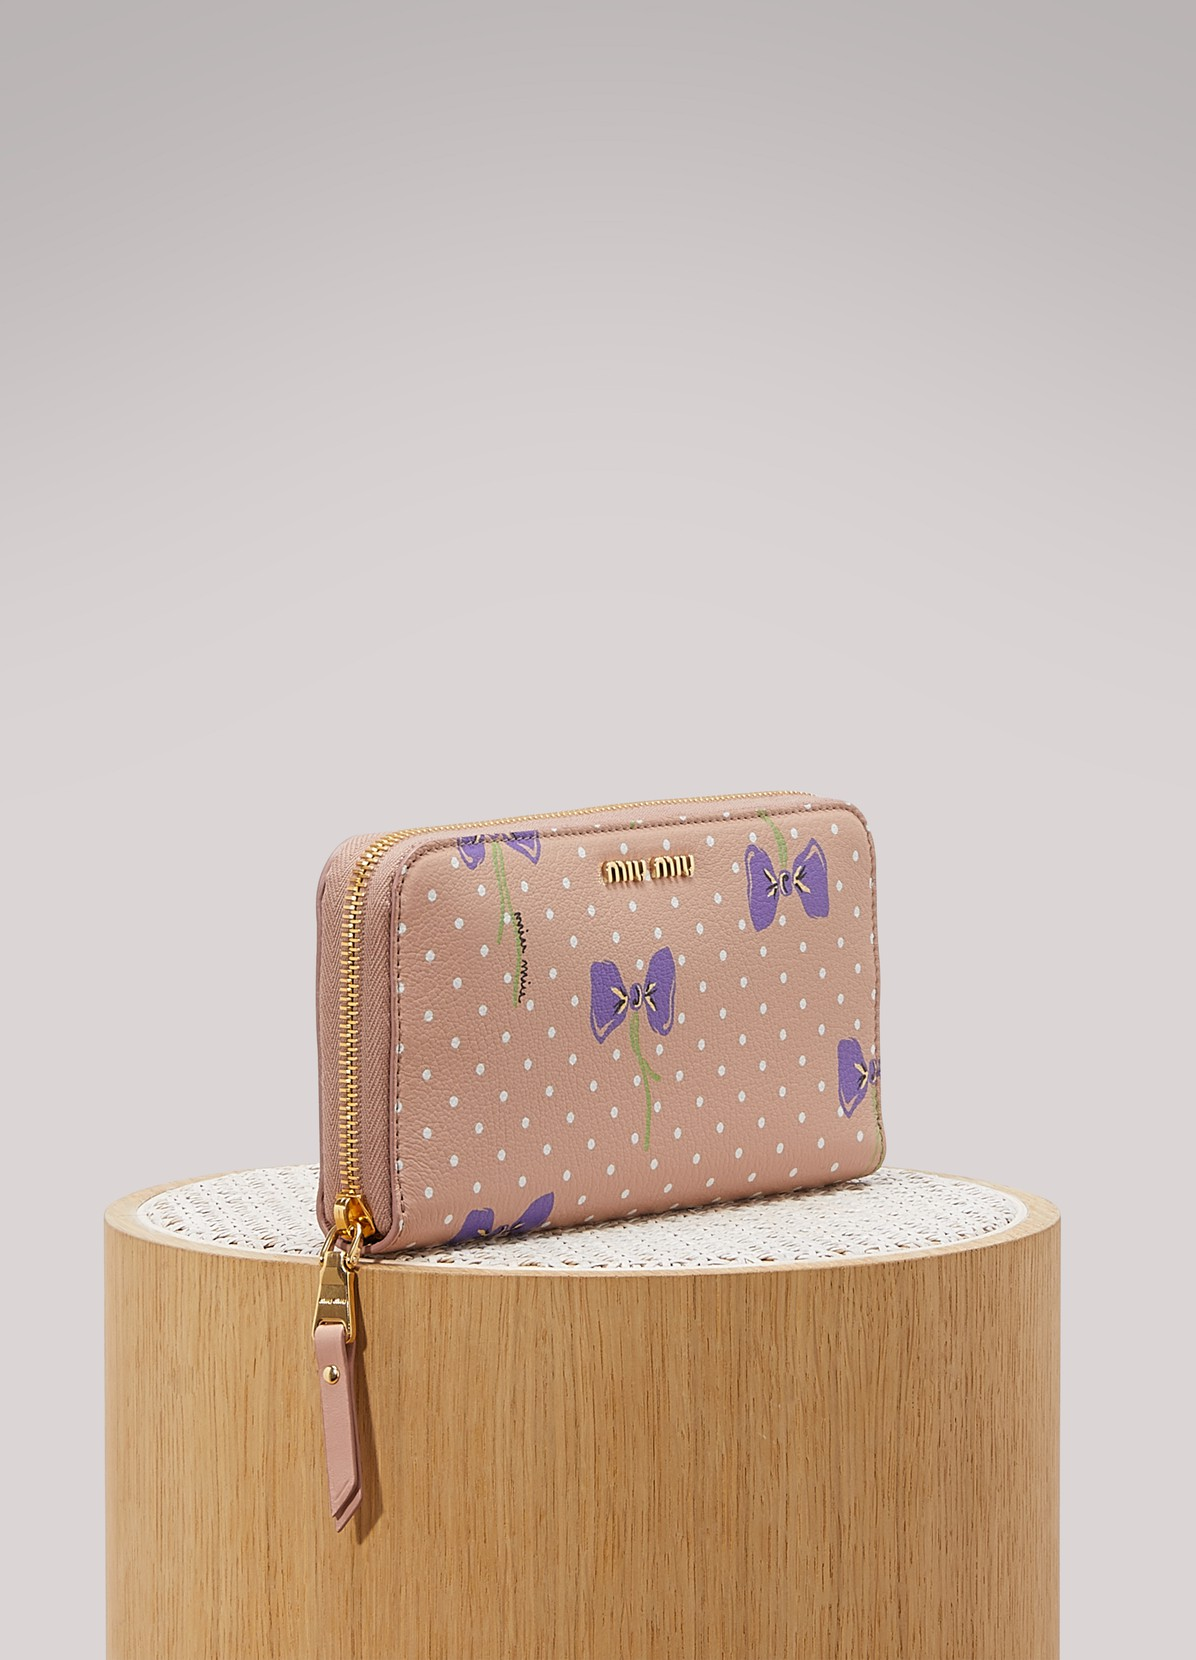 Miu Miu Wallet Bow